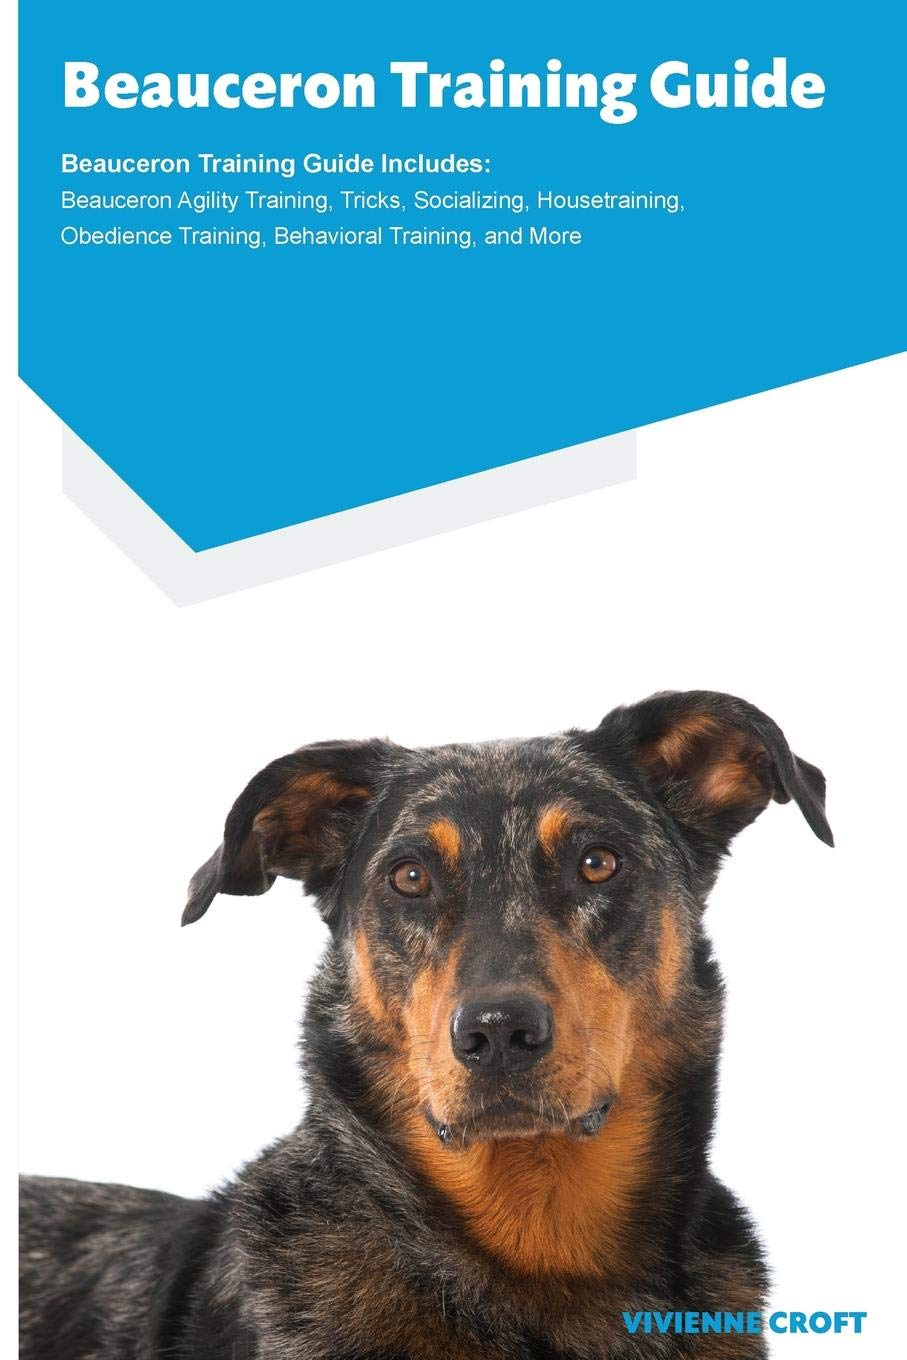 Beauceron Training Guide Beauceron Training Guide Includes: Beauceron Agility Training, Tricks, Socializing…